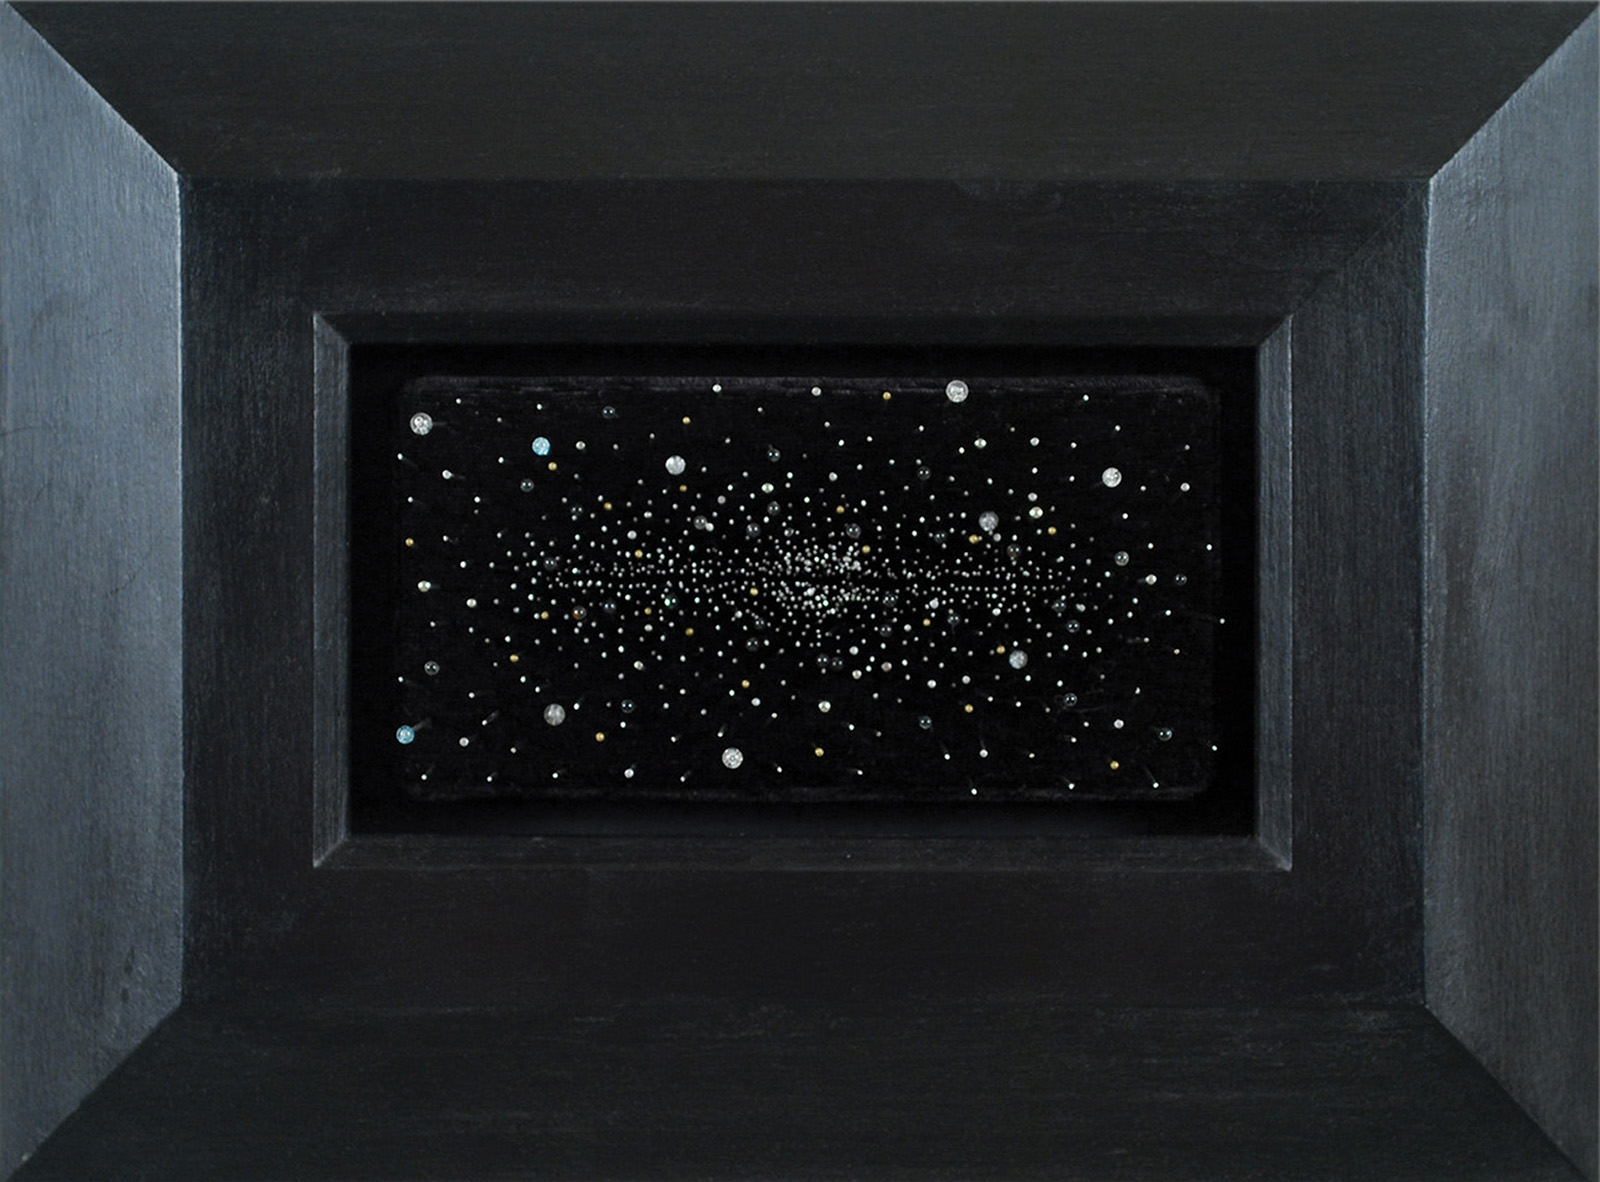 Leigh Anne Langwell, Distant Fires: Private Universe, Galaxy no. 5, 2012